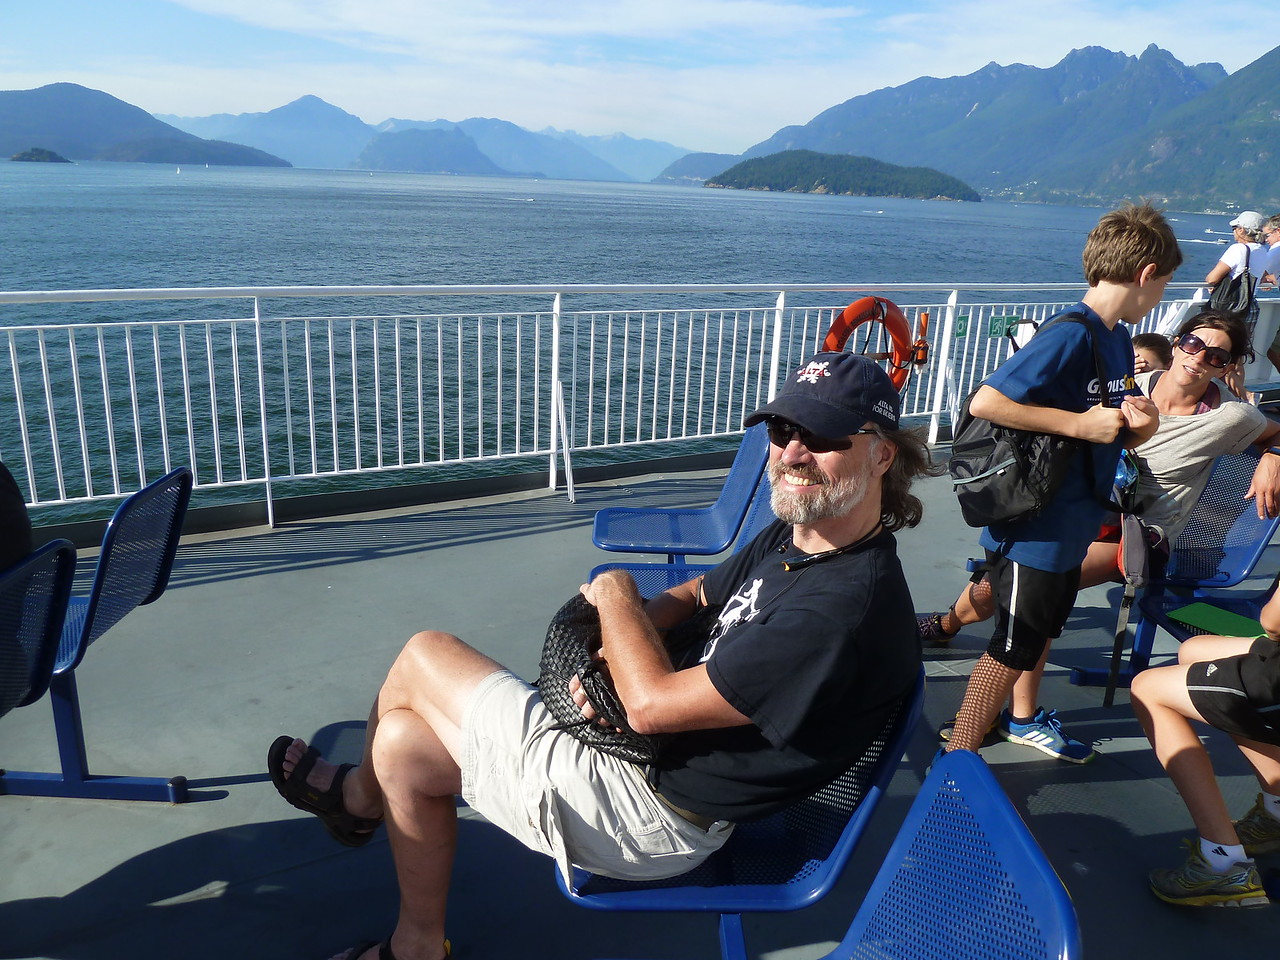 On the ferry to Nanaimo, Vancouver Island, passing through fabulous Howe Sound.